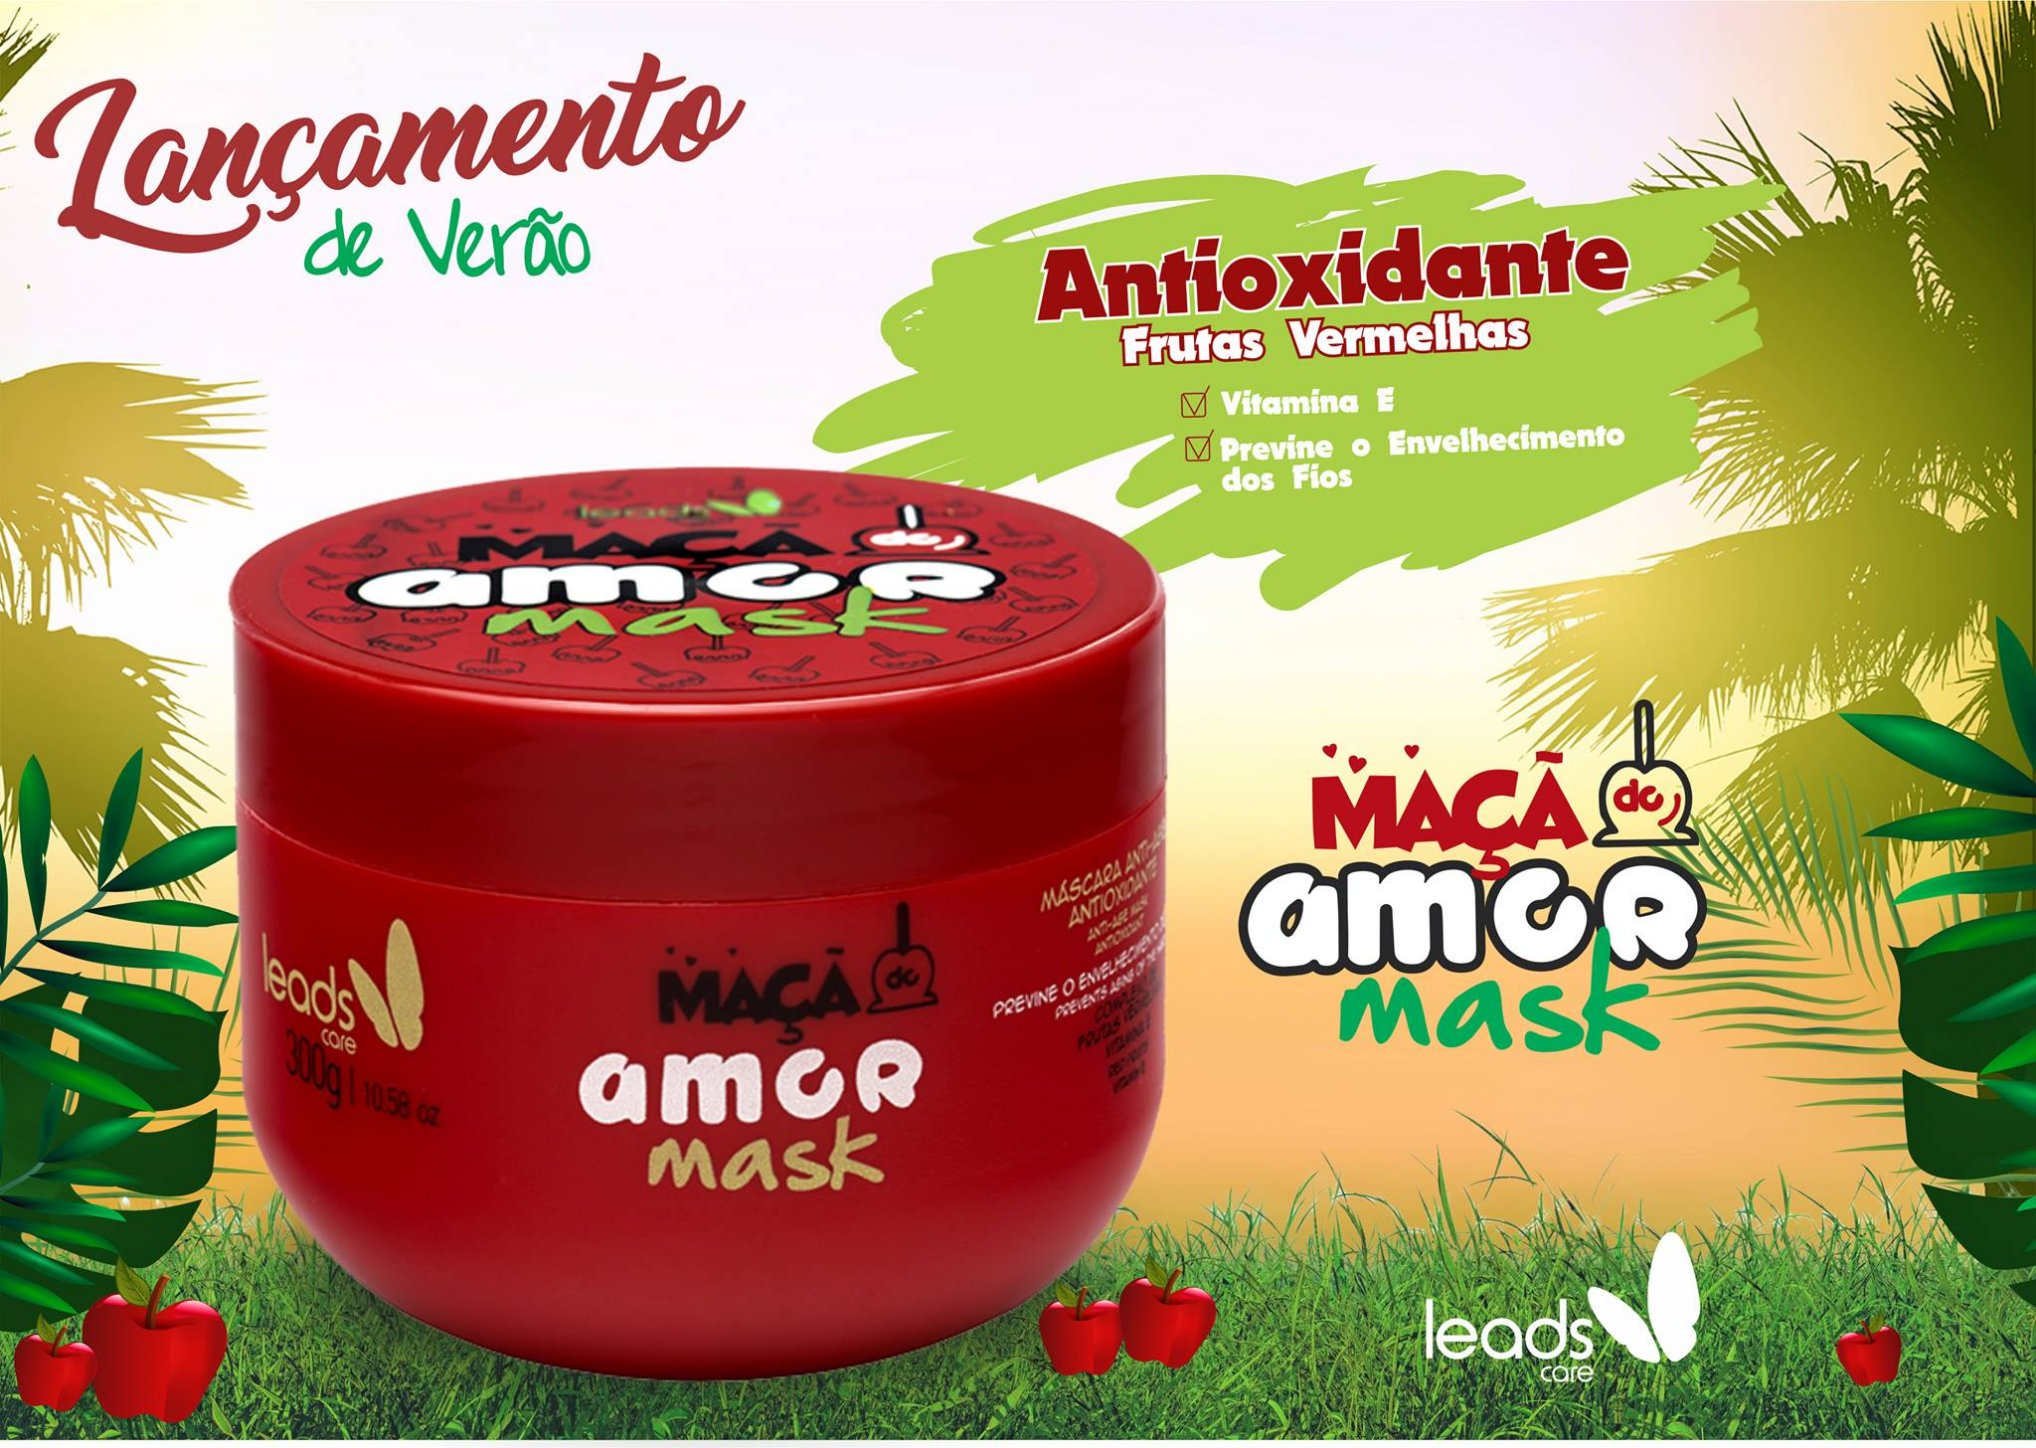 Maça do Amor Mak Leads Care